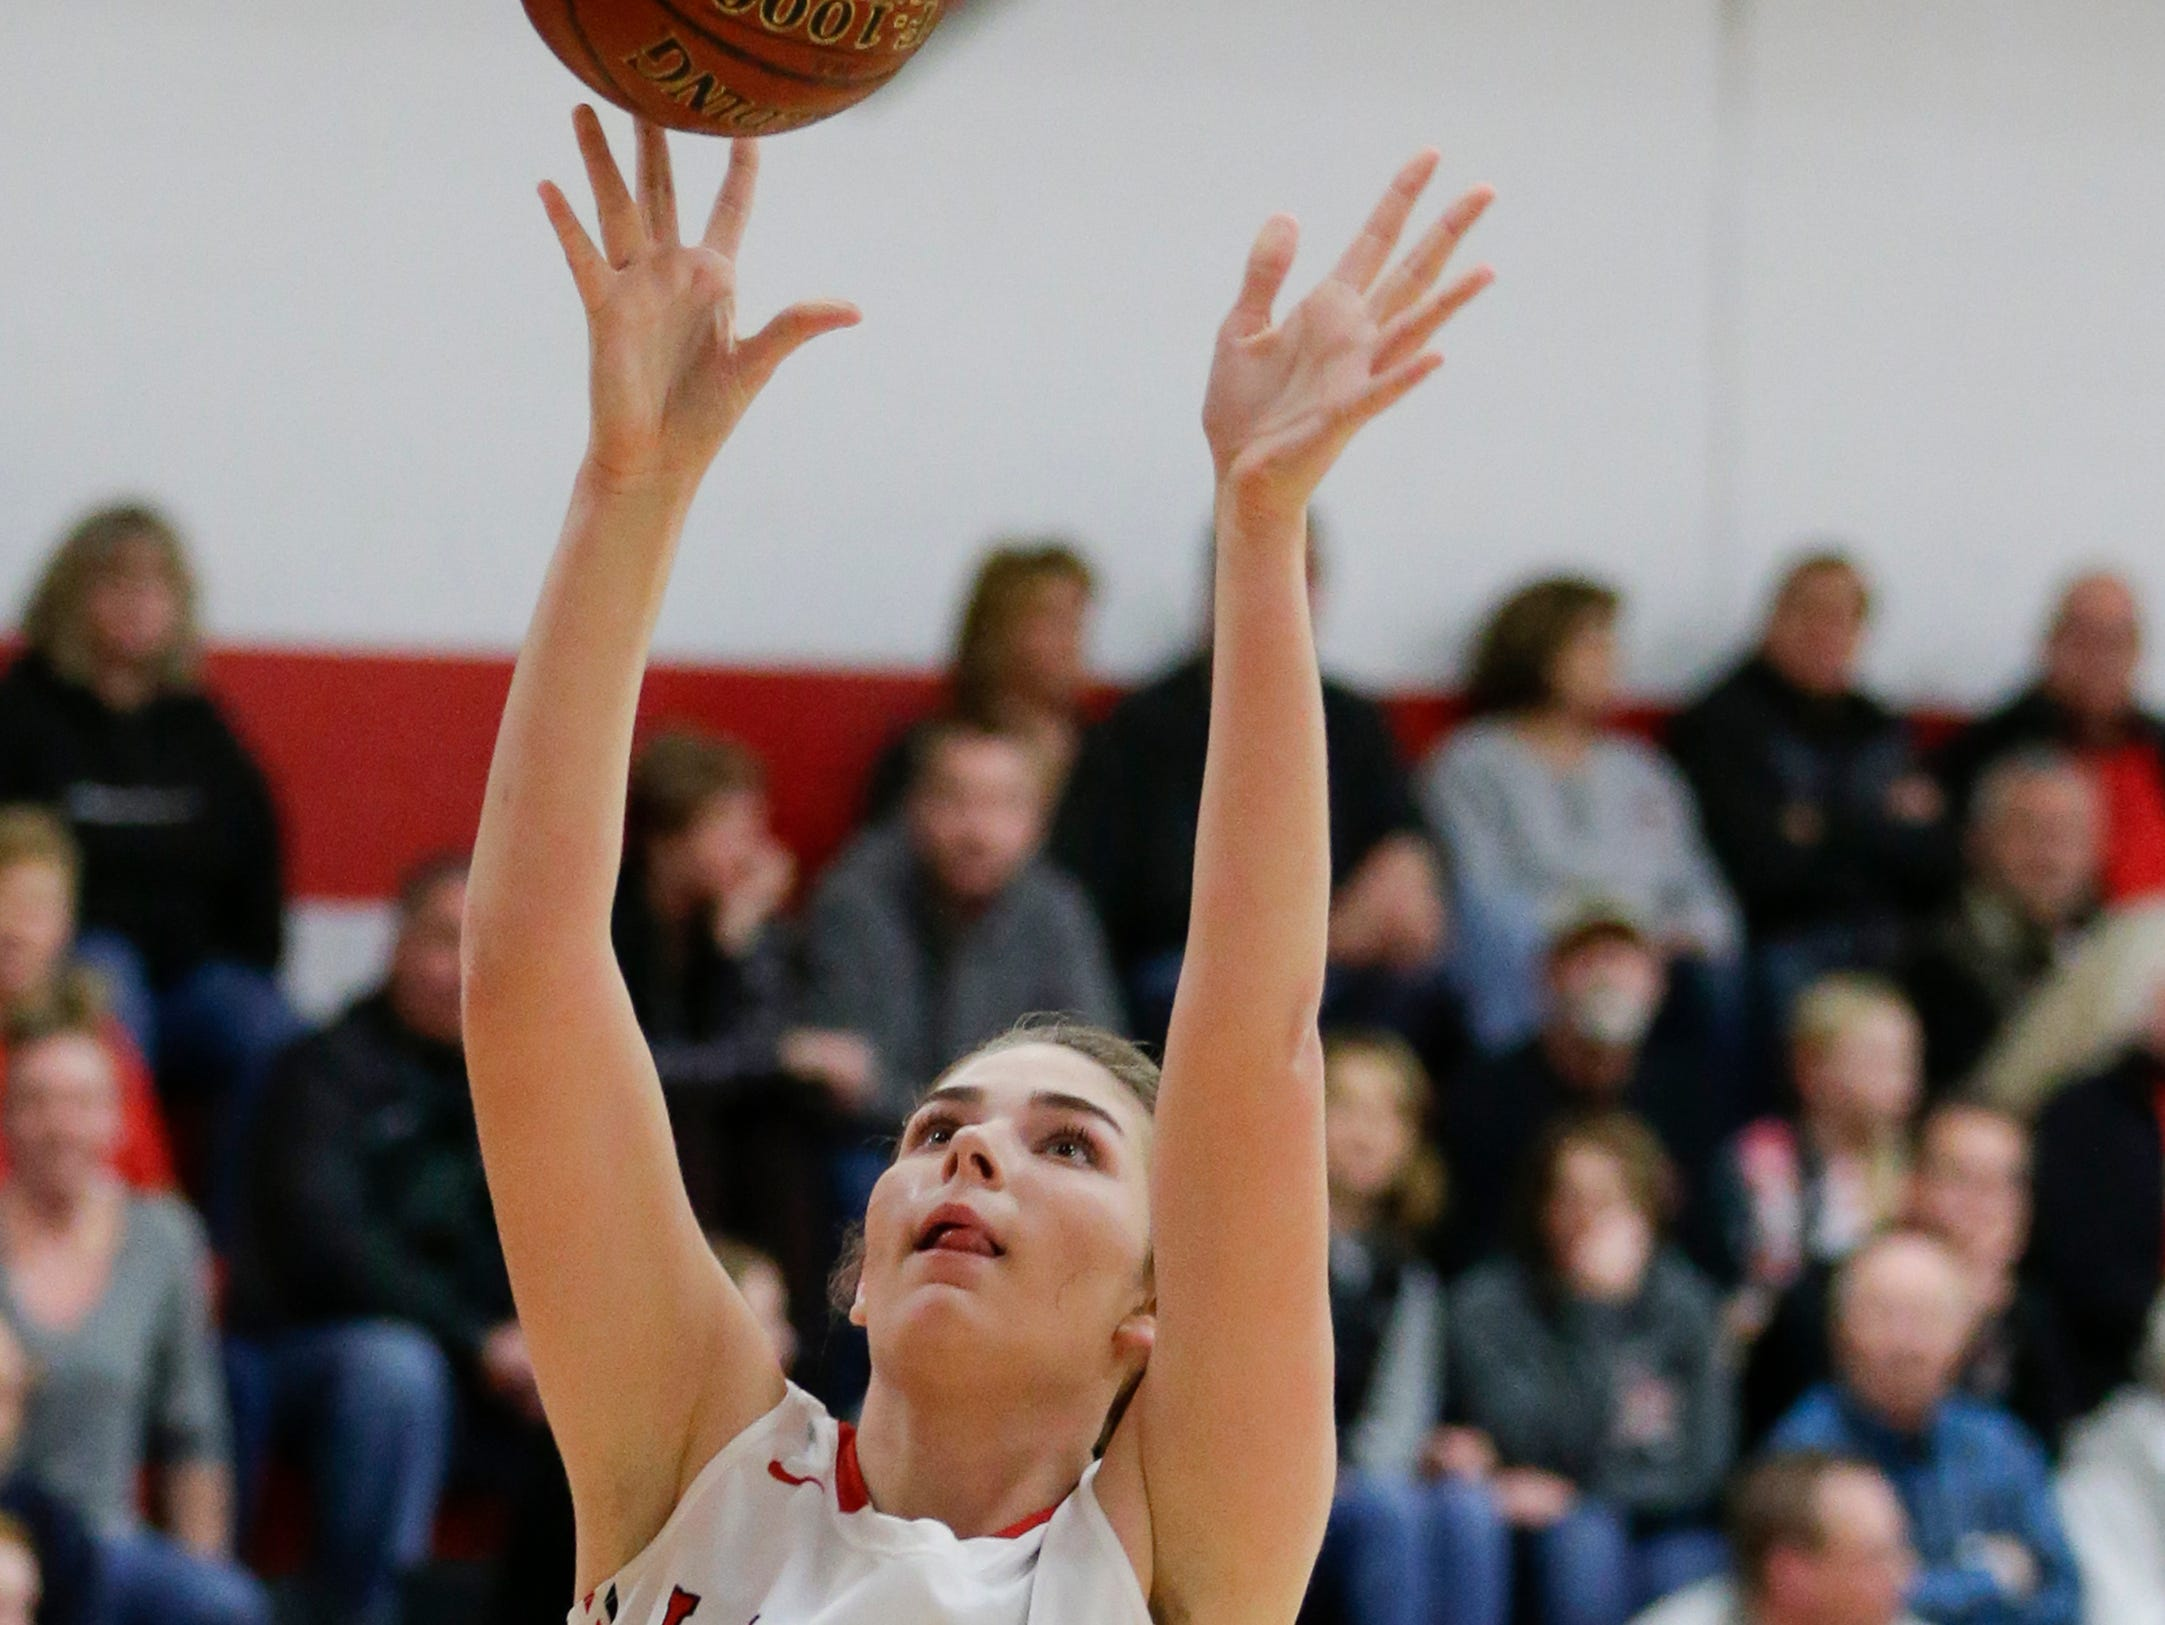 Manitowoc Lutheran's Madison Gorte takes it to the hoop on a fast break against Howards Grove at Manitowoc Lutheran High School Tuesday, December 18, 2018, in Manitowoc, Wis. Joshua Clark/USA TODAY NETWORK-Wisconsin